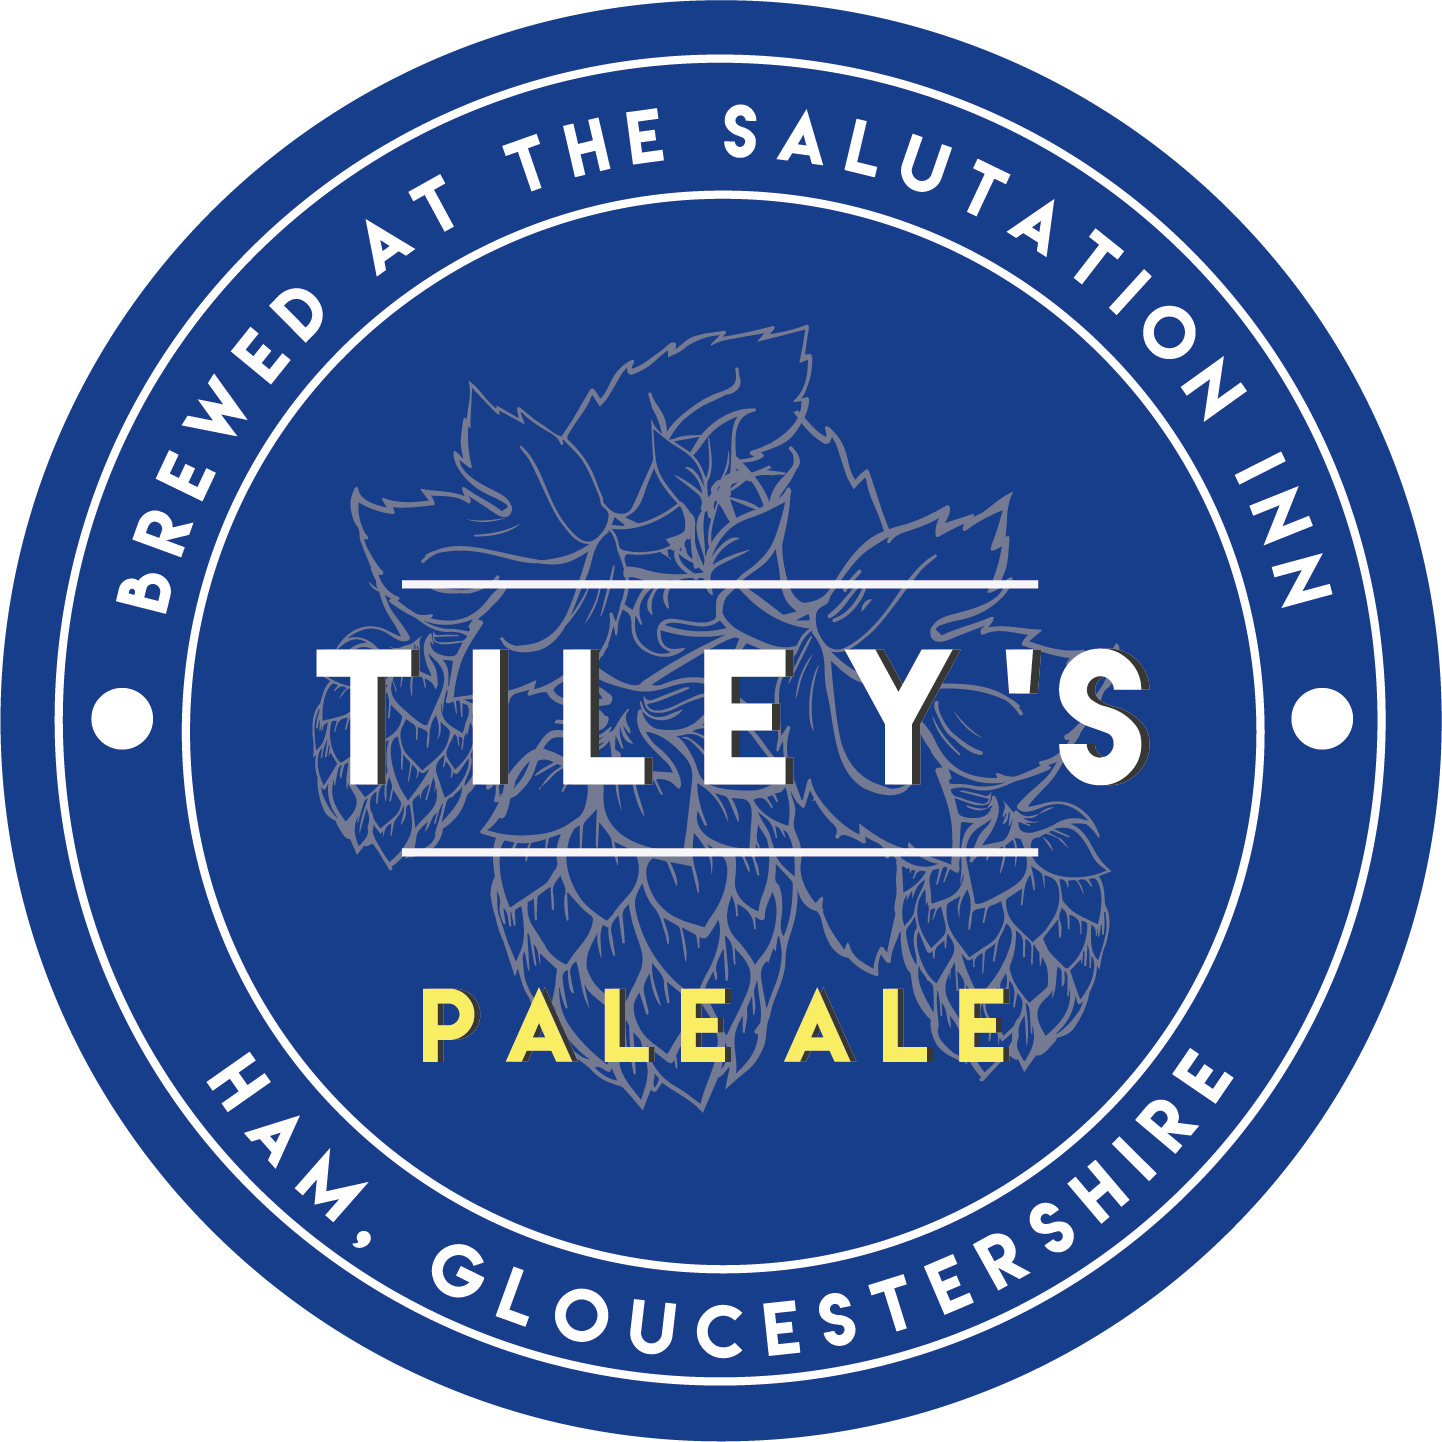 Tiley's Brewery Nelson Sauvin Pale Ale 4.1% Bag-in-Box